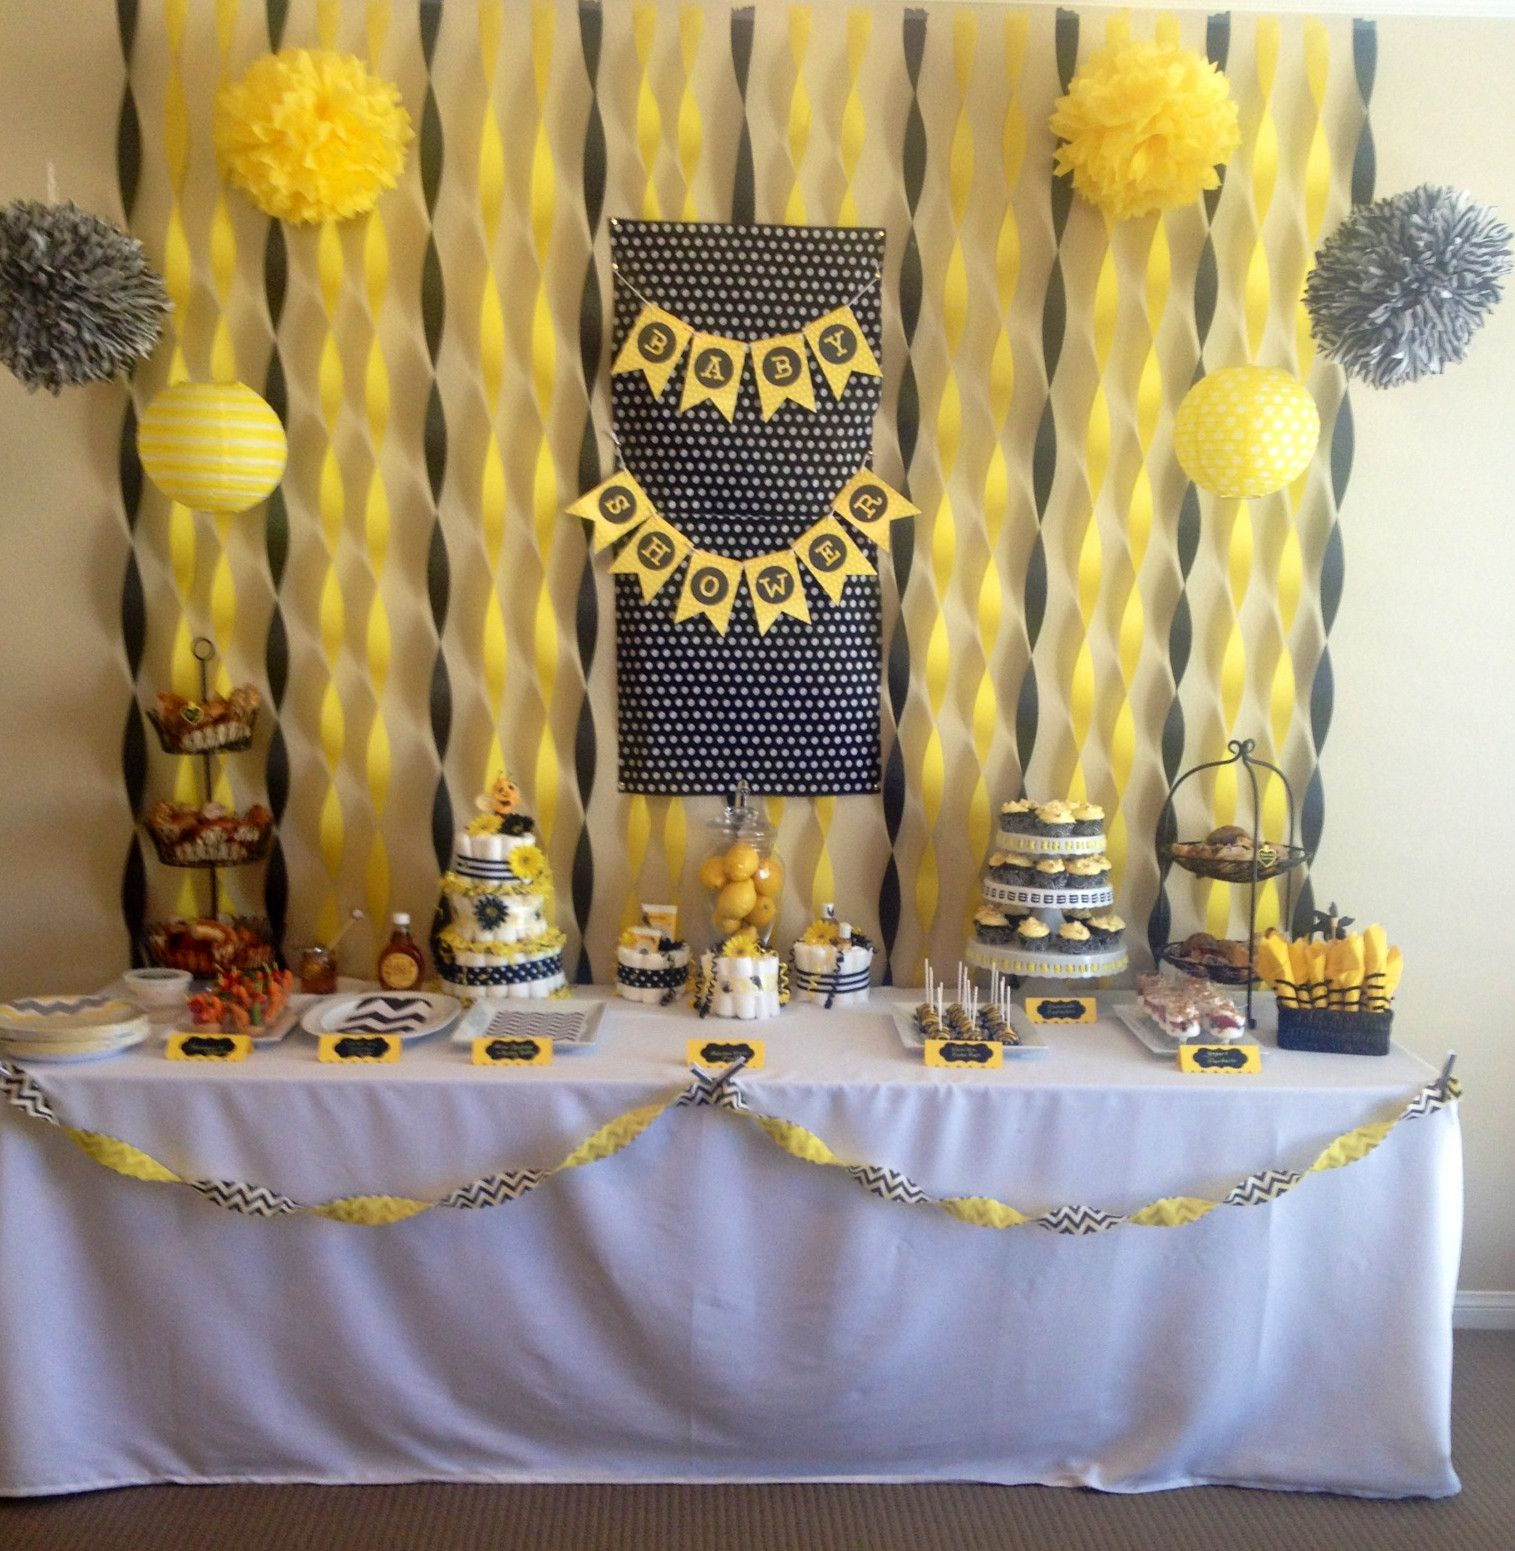 Bumble Bee Themed Baby Shower With Buttercup And Slate Grey Tissue Paper Pompoms